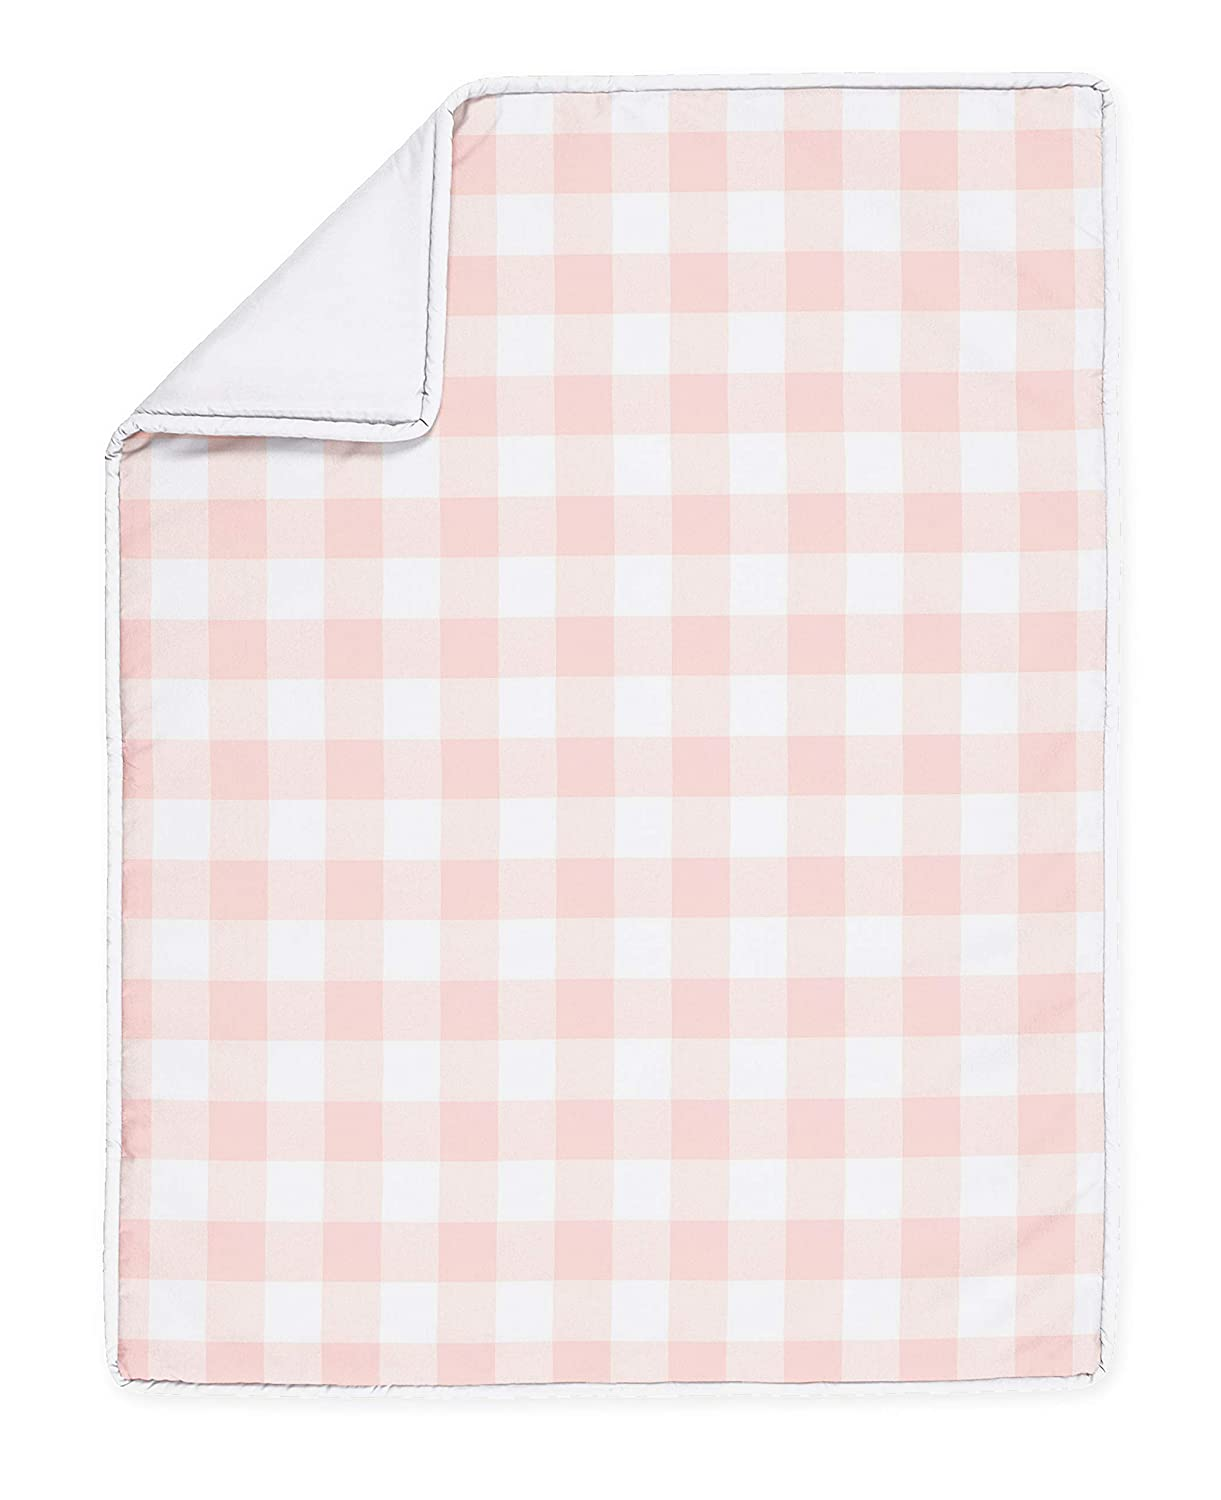 Gingham and Flowers Floral Crib Bedding Set Country Baby Bedding Gingham Pink and White